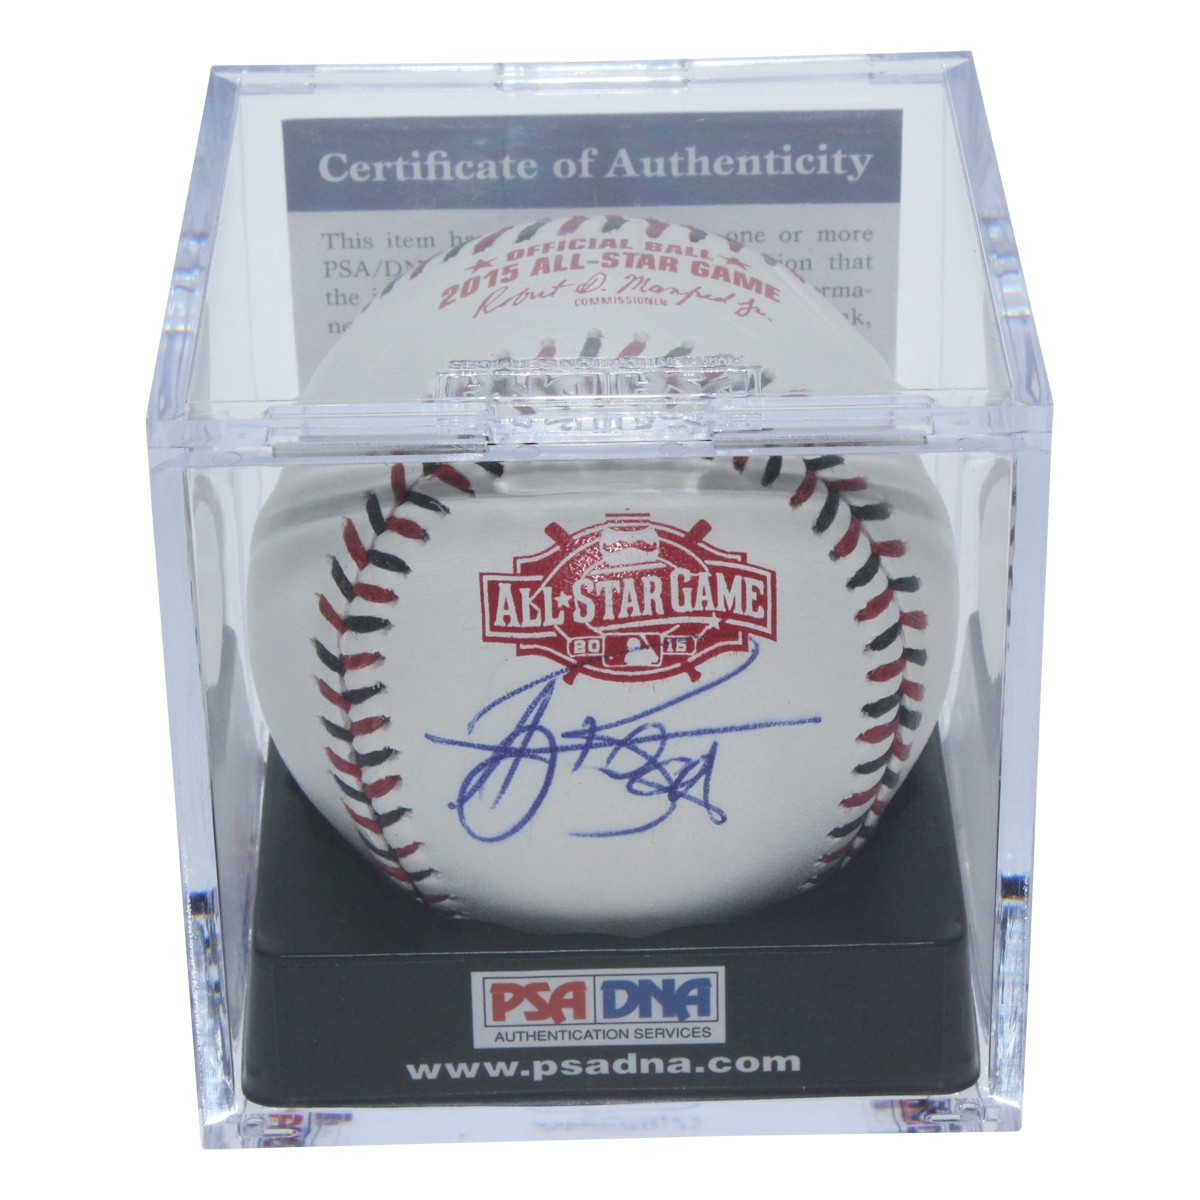 5beb2d35764 AJ Burnett Autographed Signed 2015 MLB All Star Game Baseball - PSA DNA  Authentic